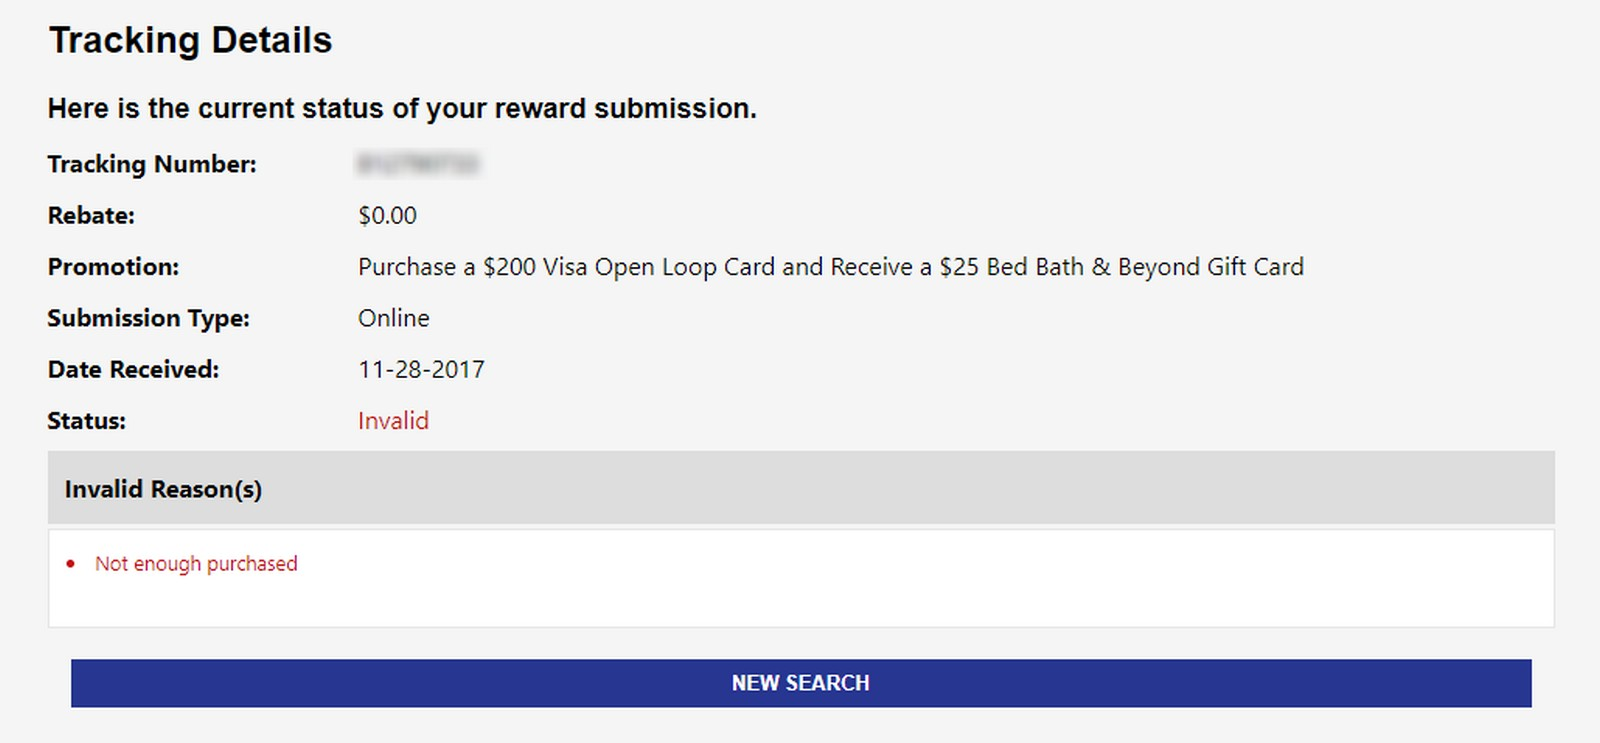 Issues With Bed Bath & Beyond Rebate Submission